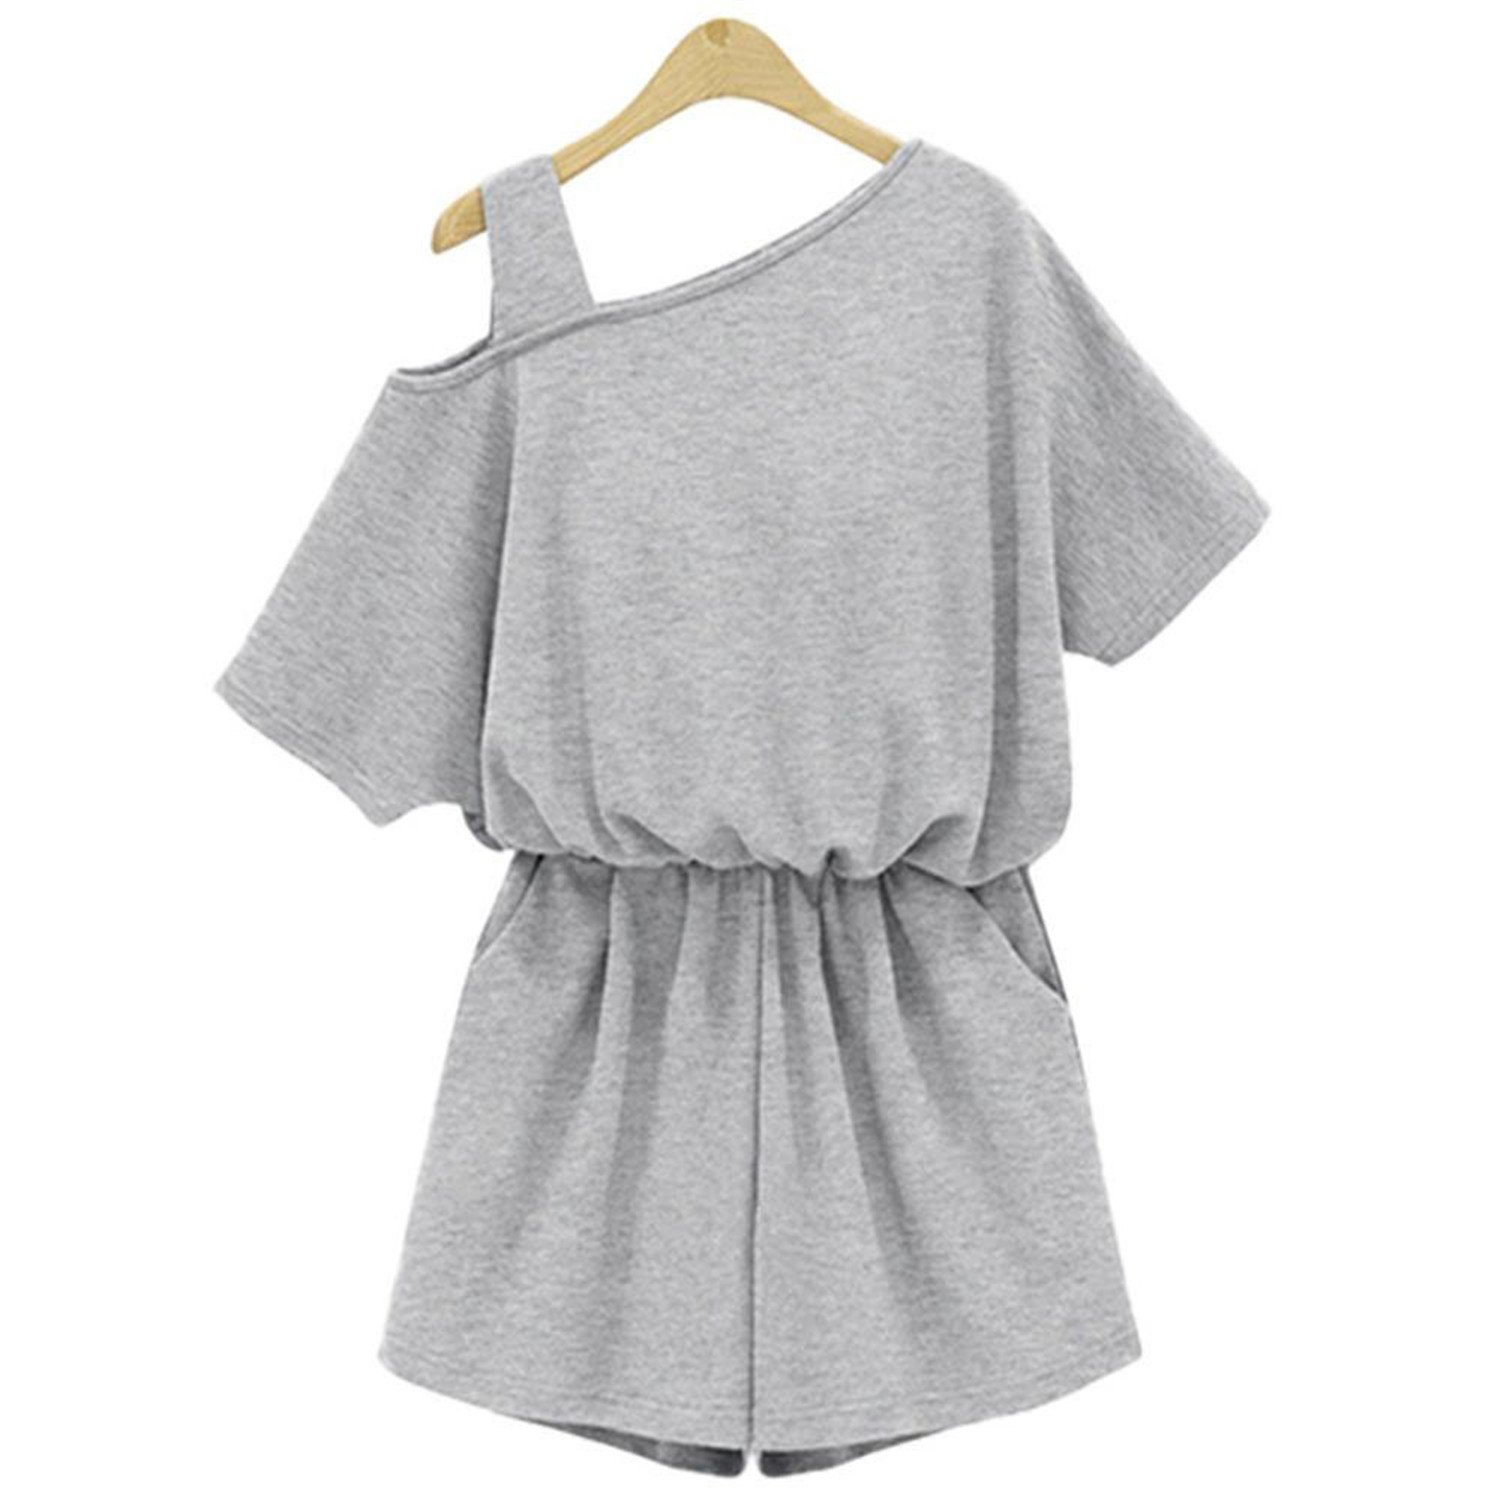 Ygosoon jumpsuits Jumpsuit Army Green Rompers 4XL Ladies Ladies Beach Wear Clothes Gray XL